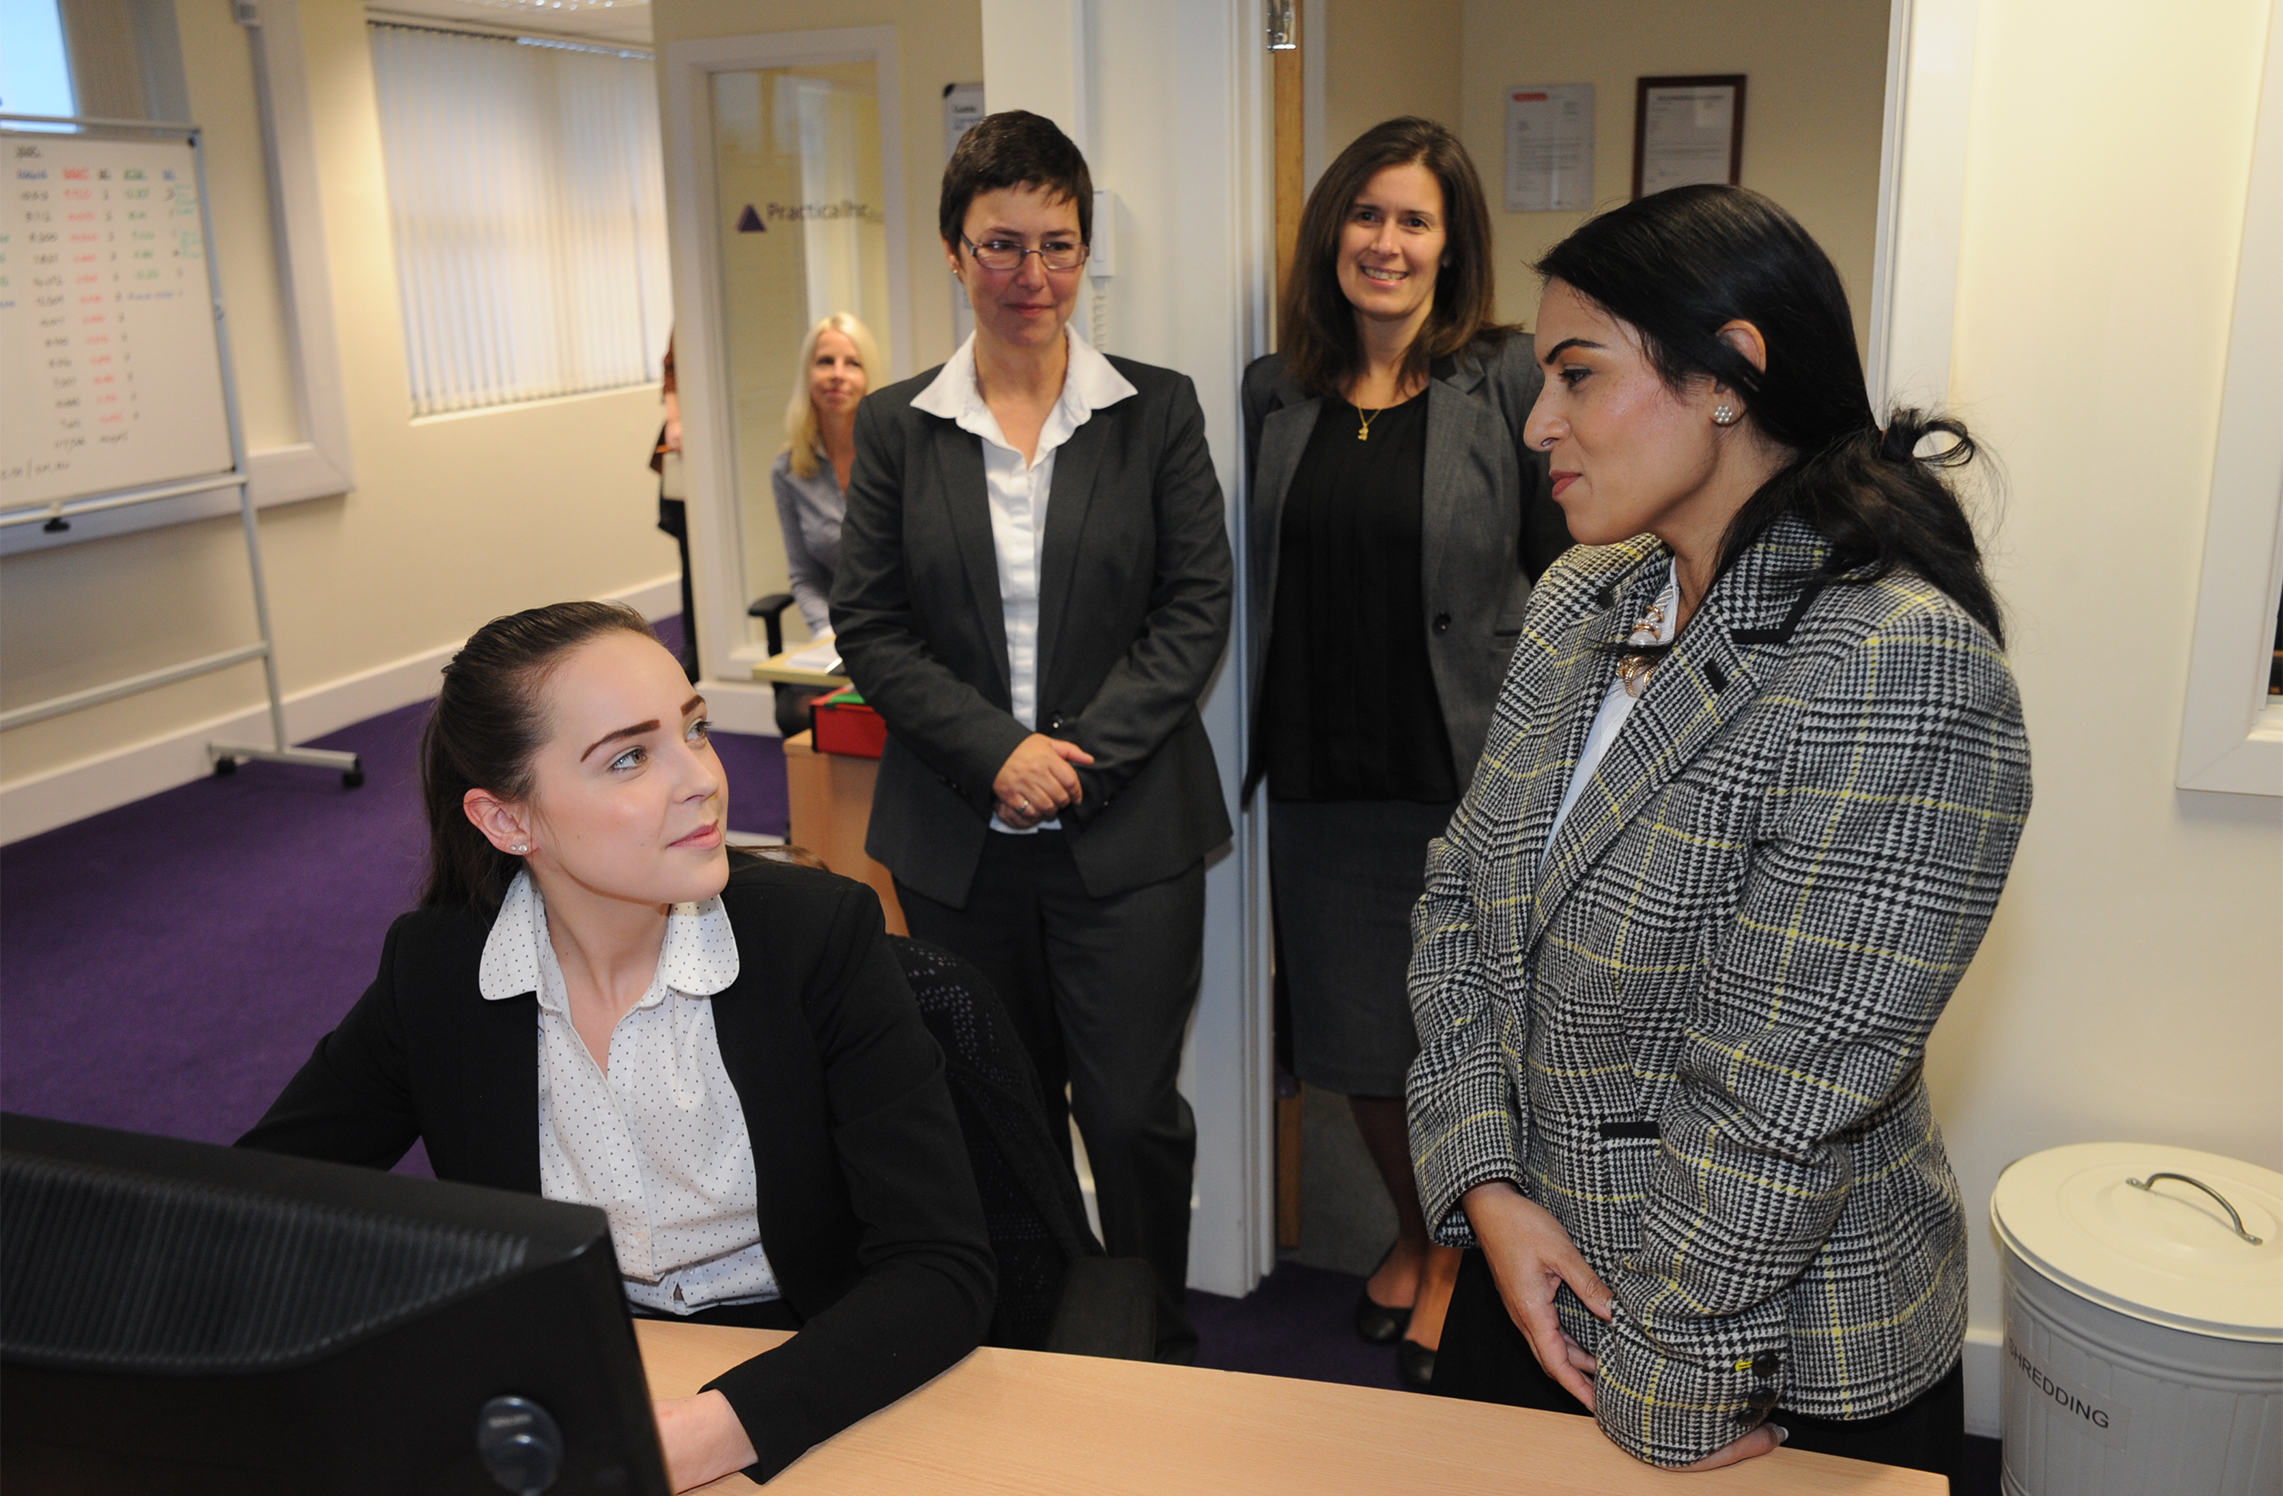 Just the job – Employment Minister Priti Patel chats with former apprentice Jasmine Aston as Practicalhr owner Paula Fisher and Fiona Haworth, senior HR consultant, look on